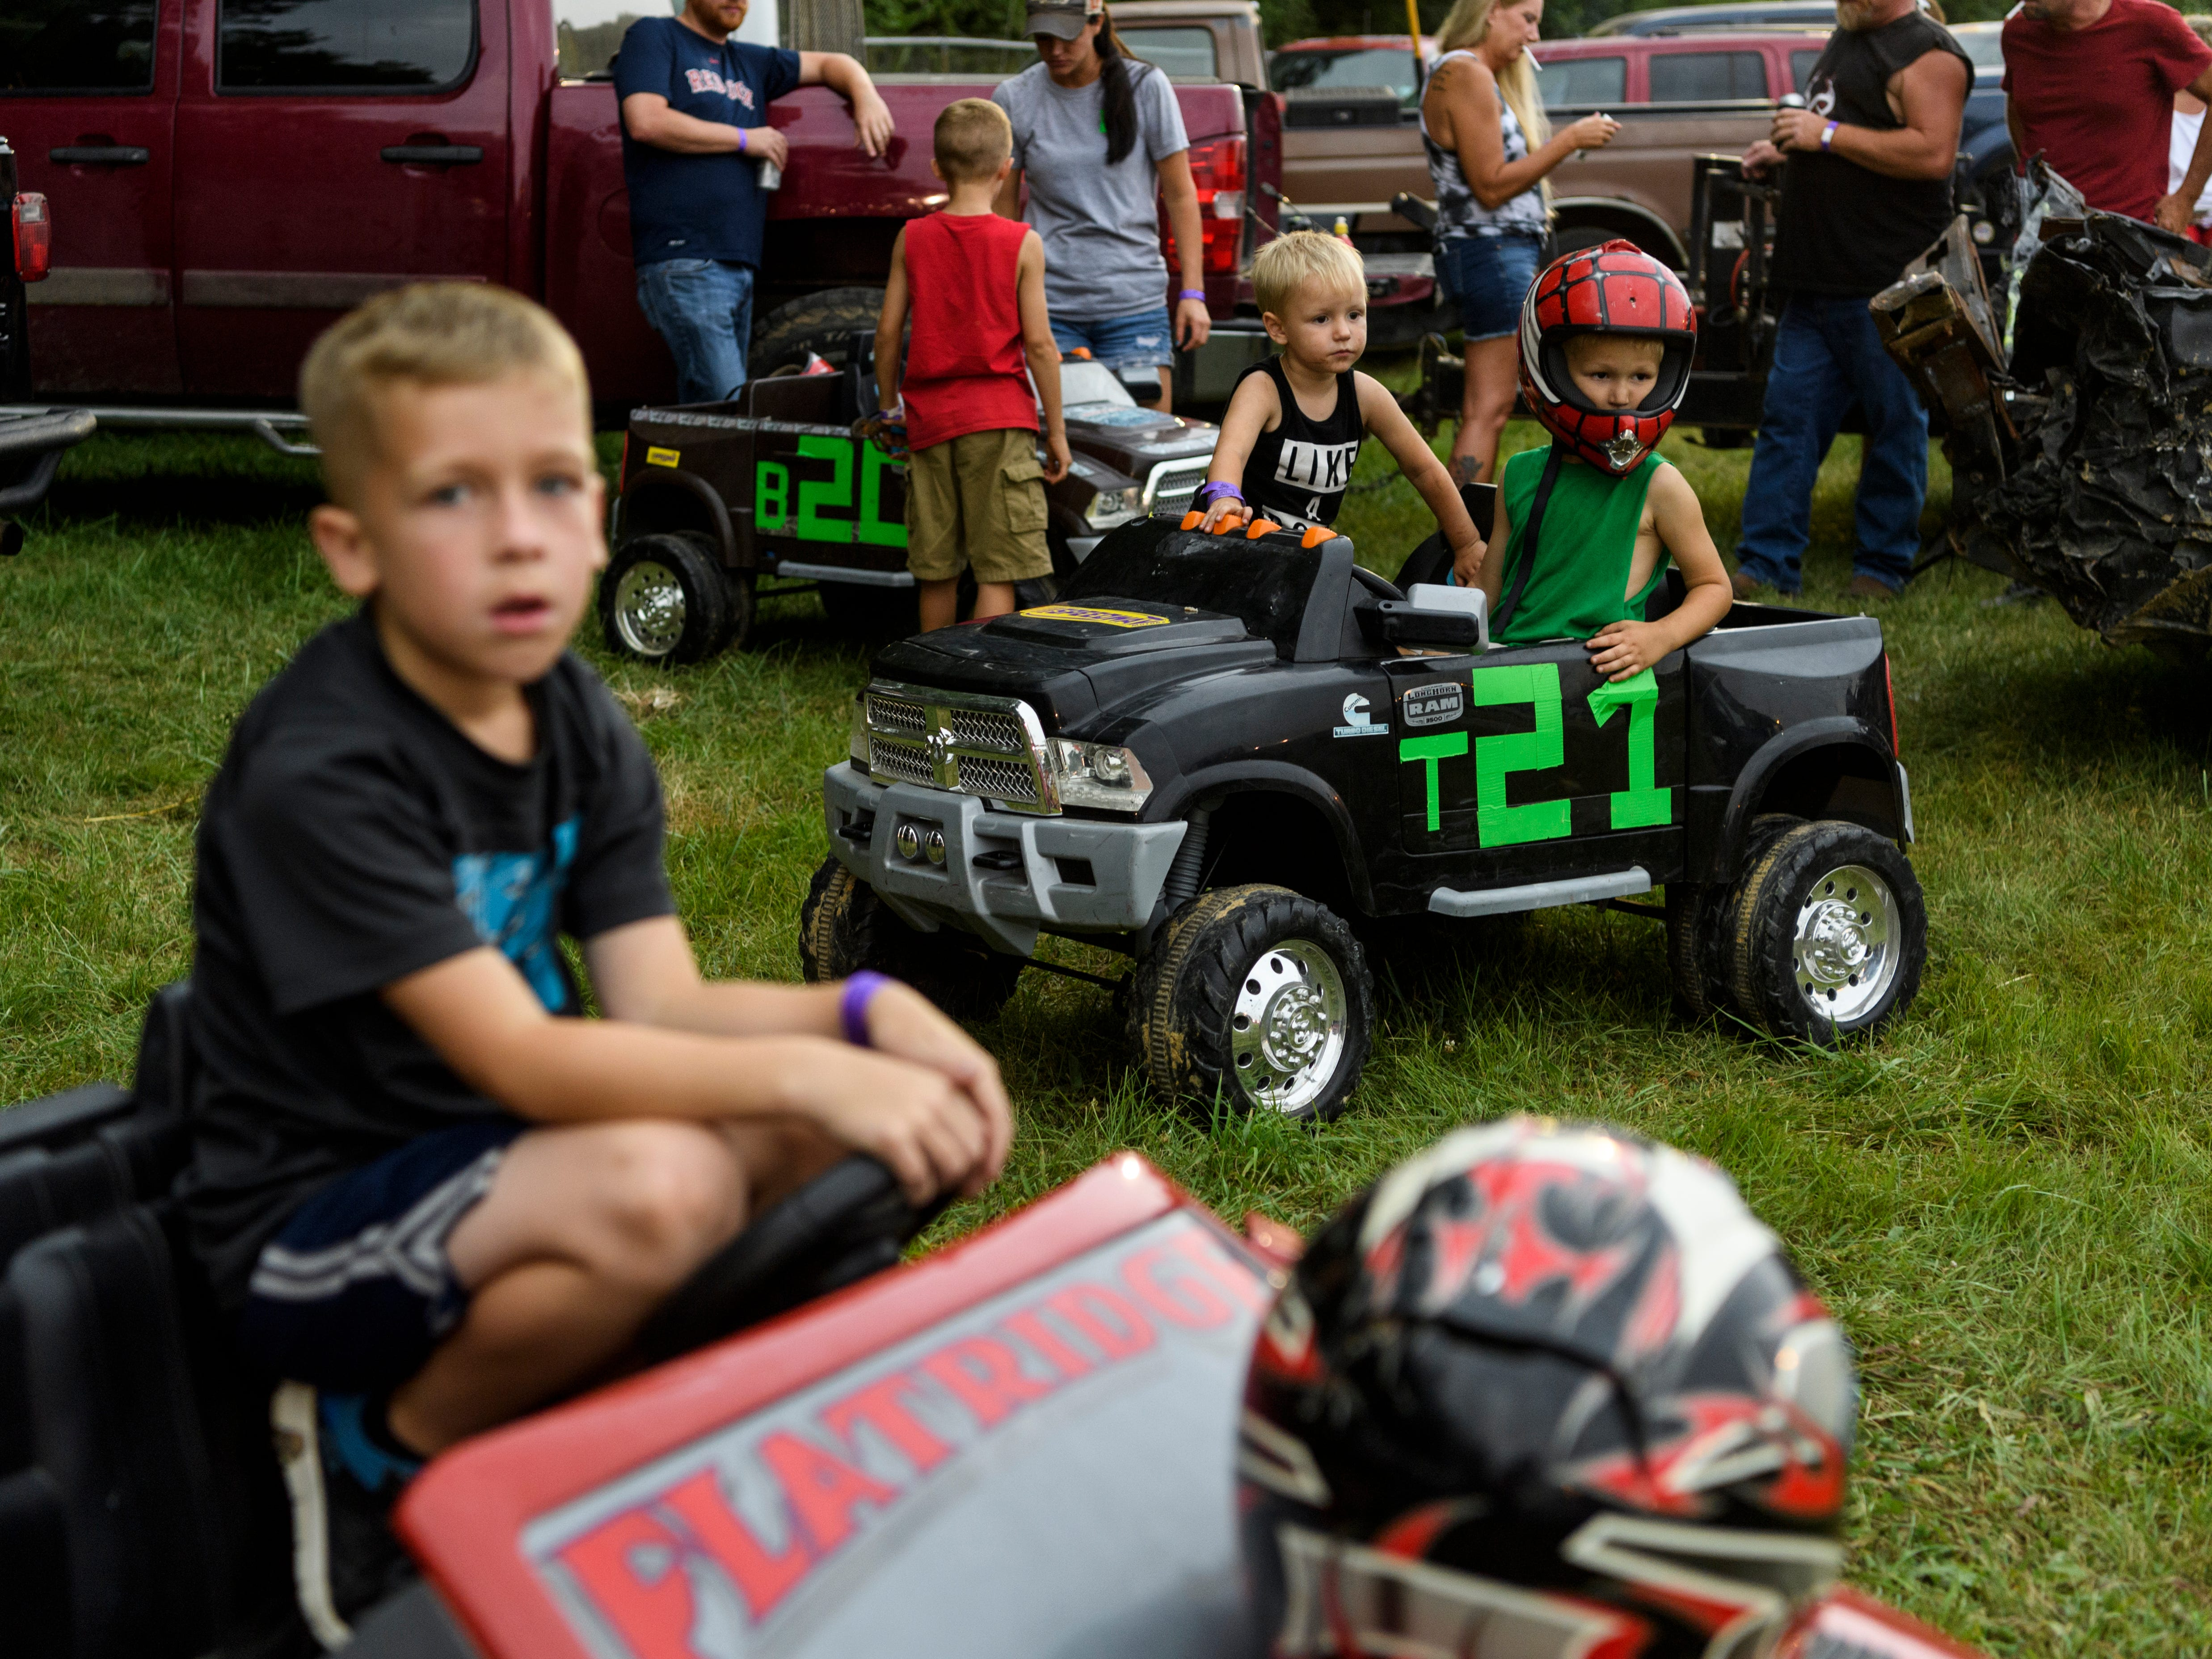 Declan Tooley, 6, from front left, Brigston Baum, 2, and Trace Spurgeon, 5, wait for the lightening and thunder to pass so they can compete in the Gibson County Fair's Powerwheels Demo Derby at the fairgrounds in Princeton, Ind., Saturday, July 14, 2018. The stormy weather cleared up enough for them to compete and be able to watch the demo derby later that night.